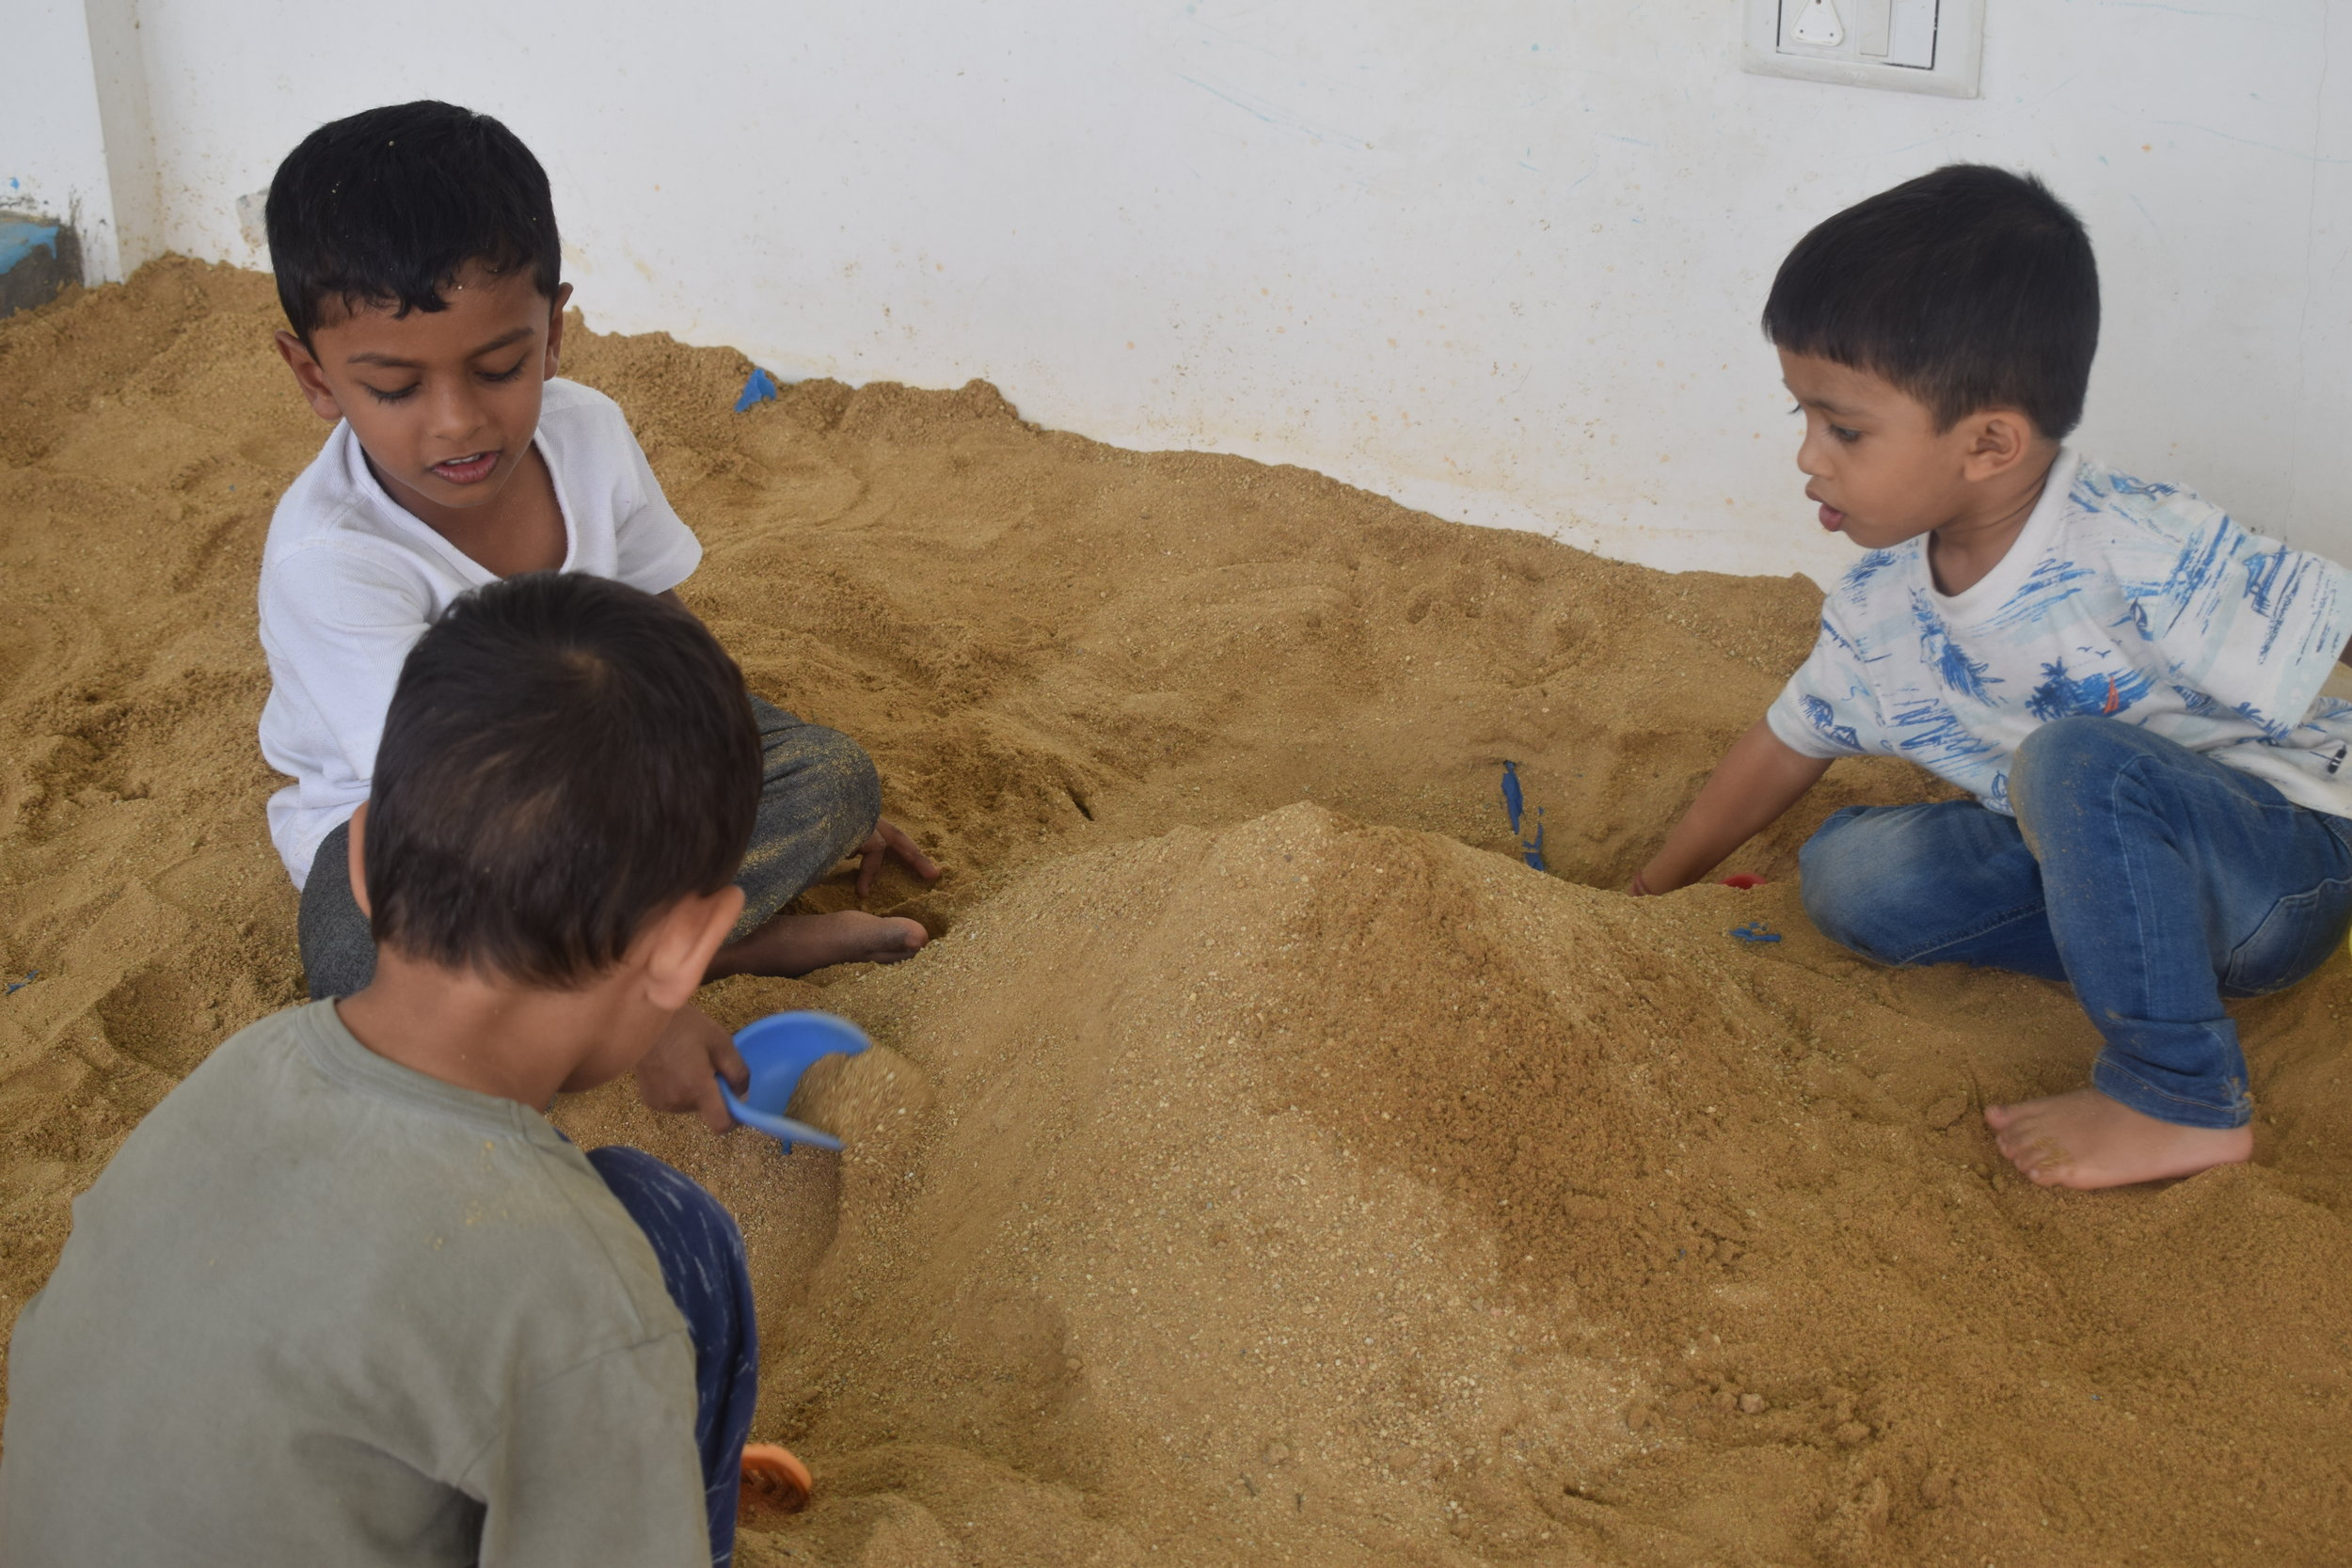 Building skills through sand play